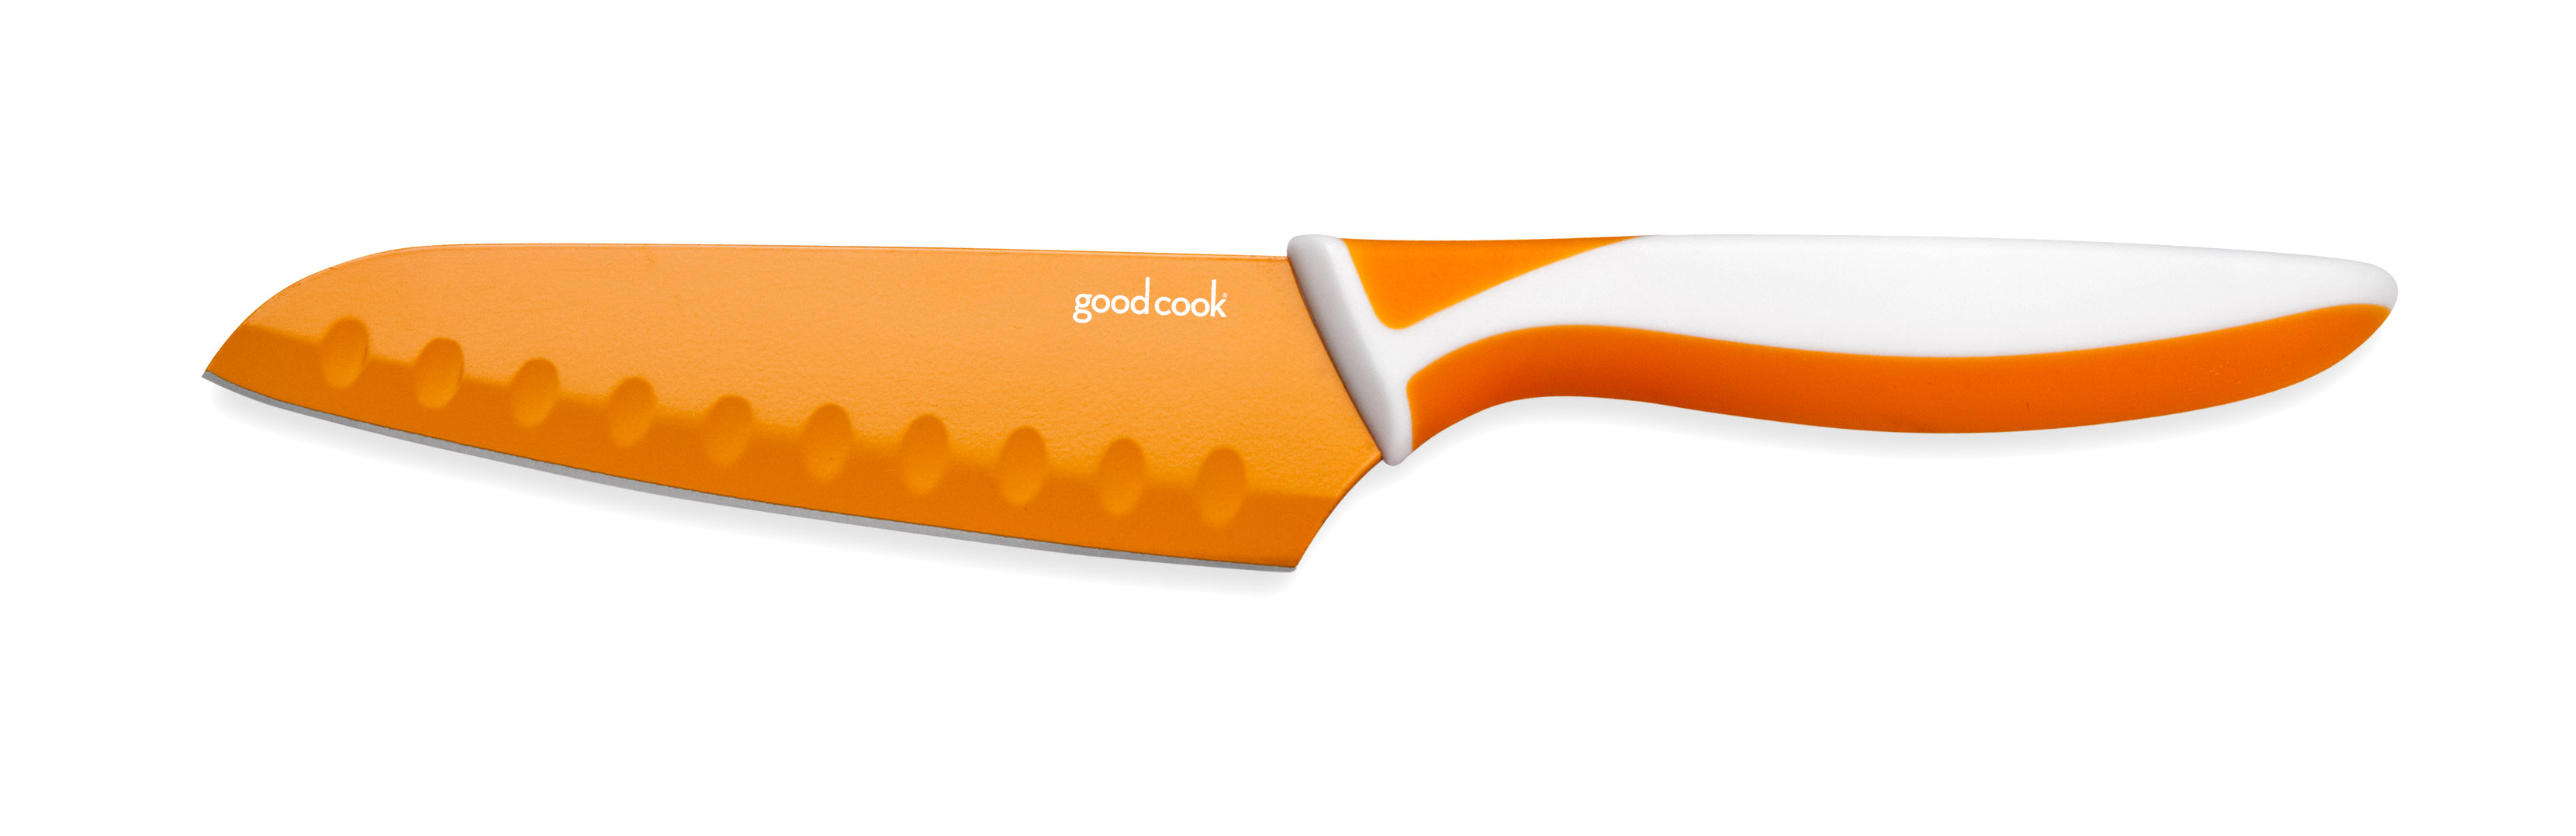 Good Cook NonStick Cutlery Review and Giveaway